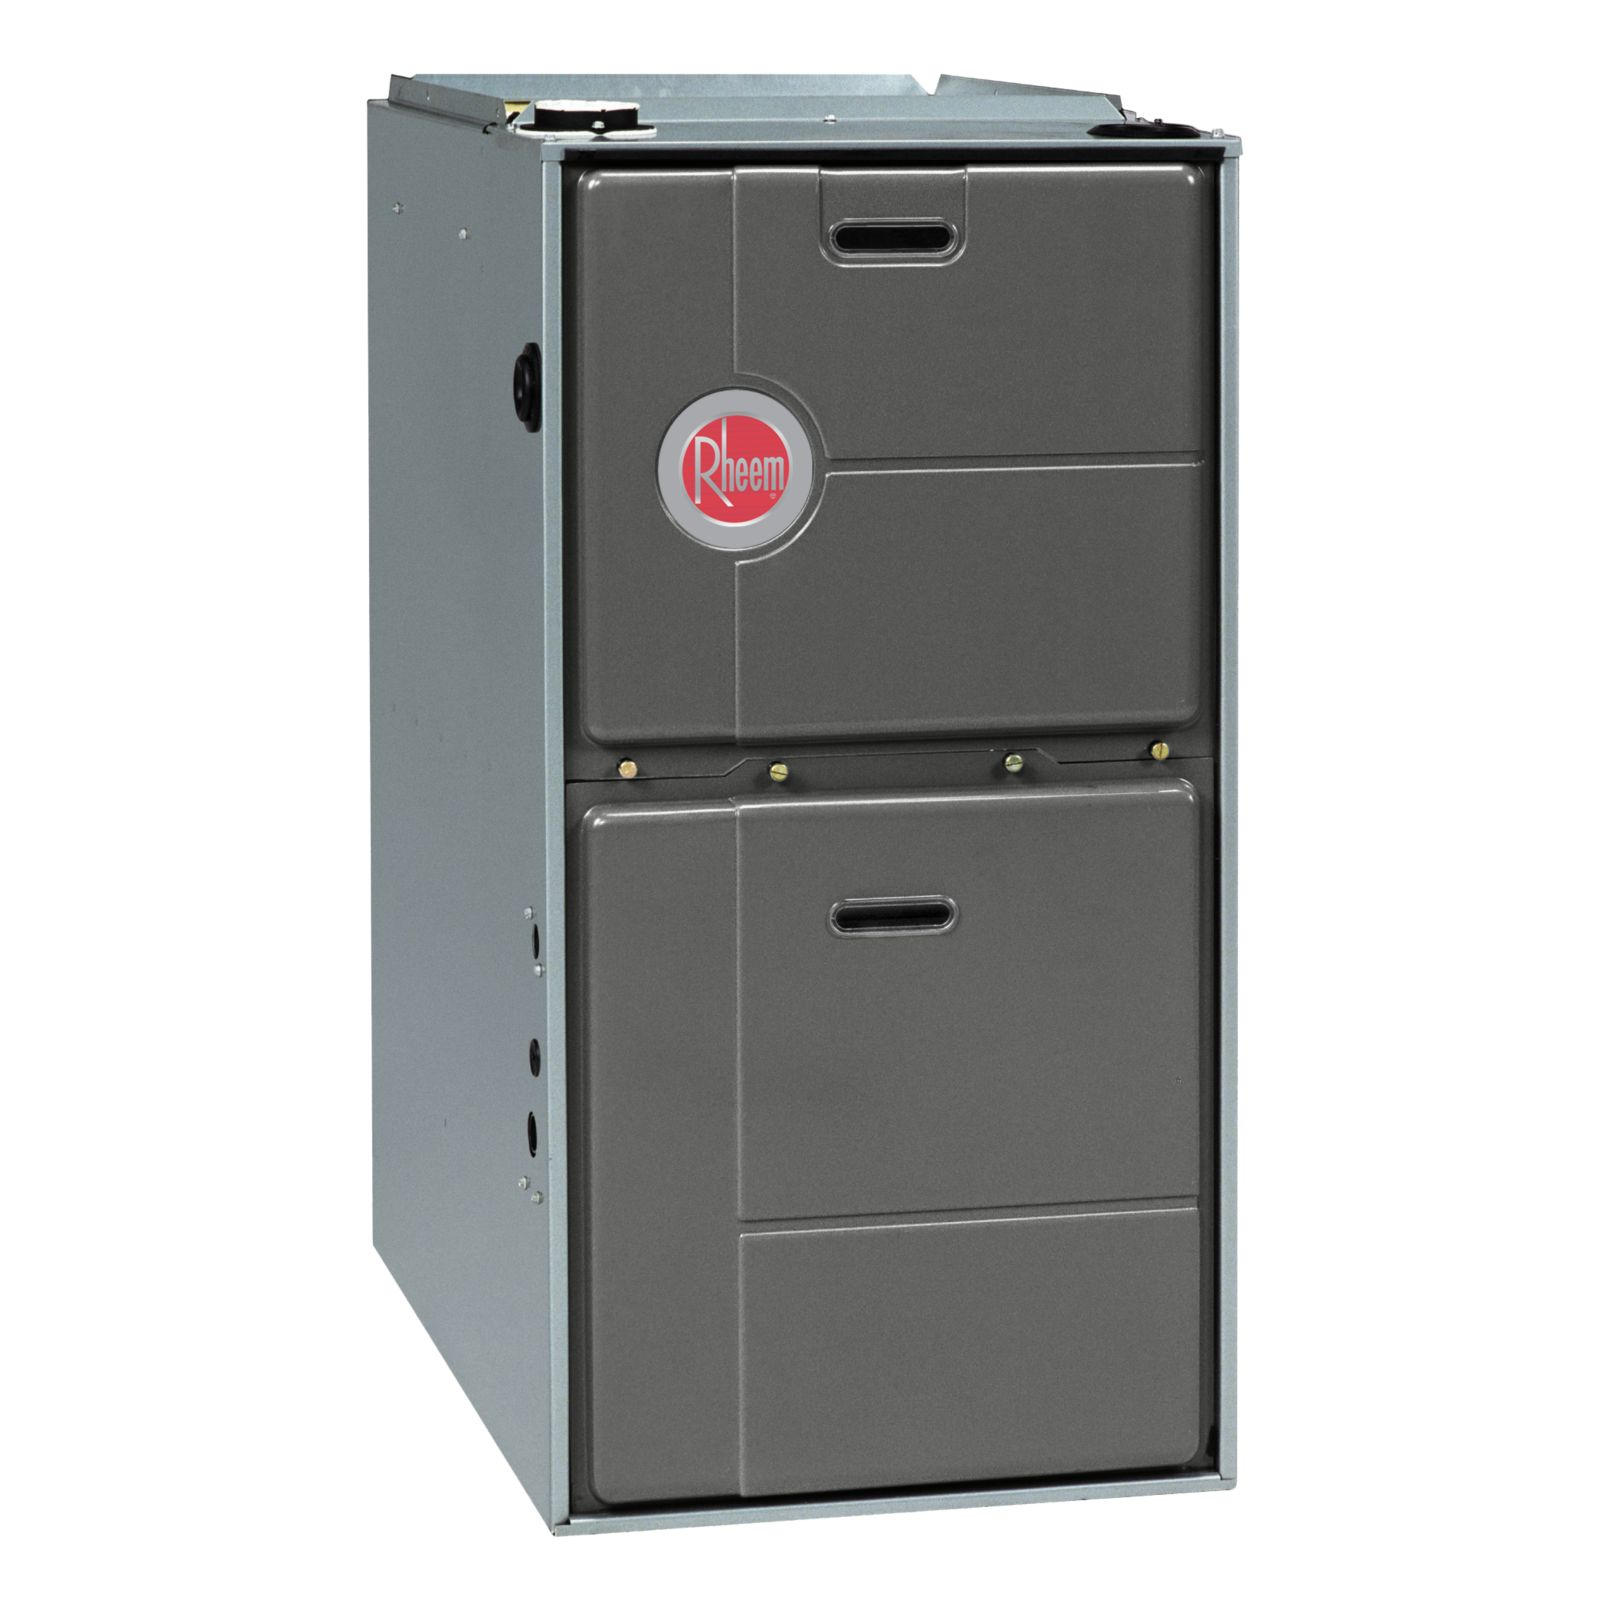 Famous rheem electric furnace wiring diagram ideas wiring diagram colorful rheem furnace wiring diagram image wiring diagram ideas asfbconference2016 Images